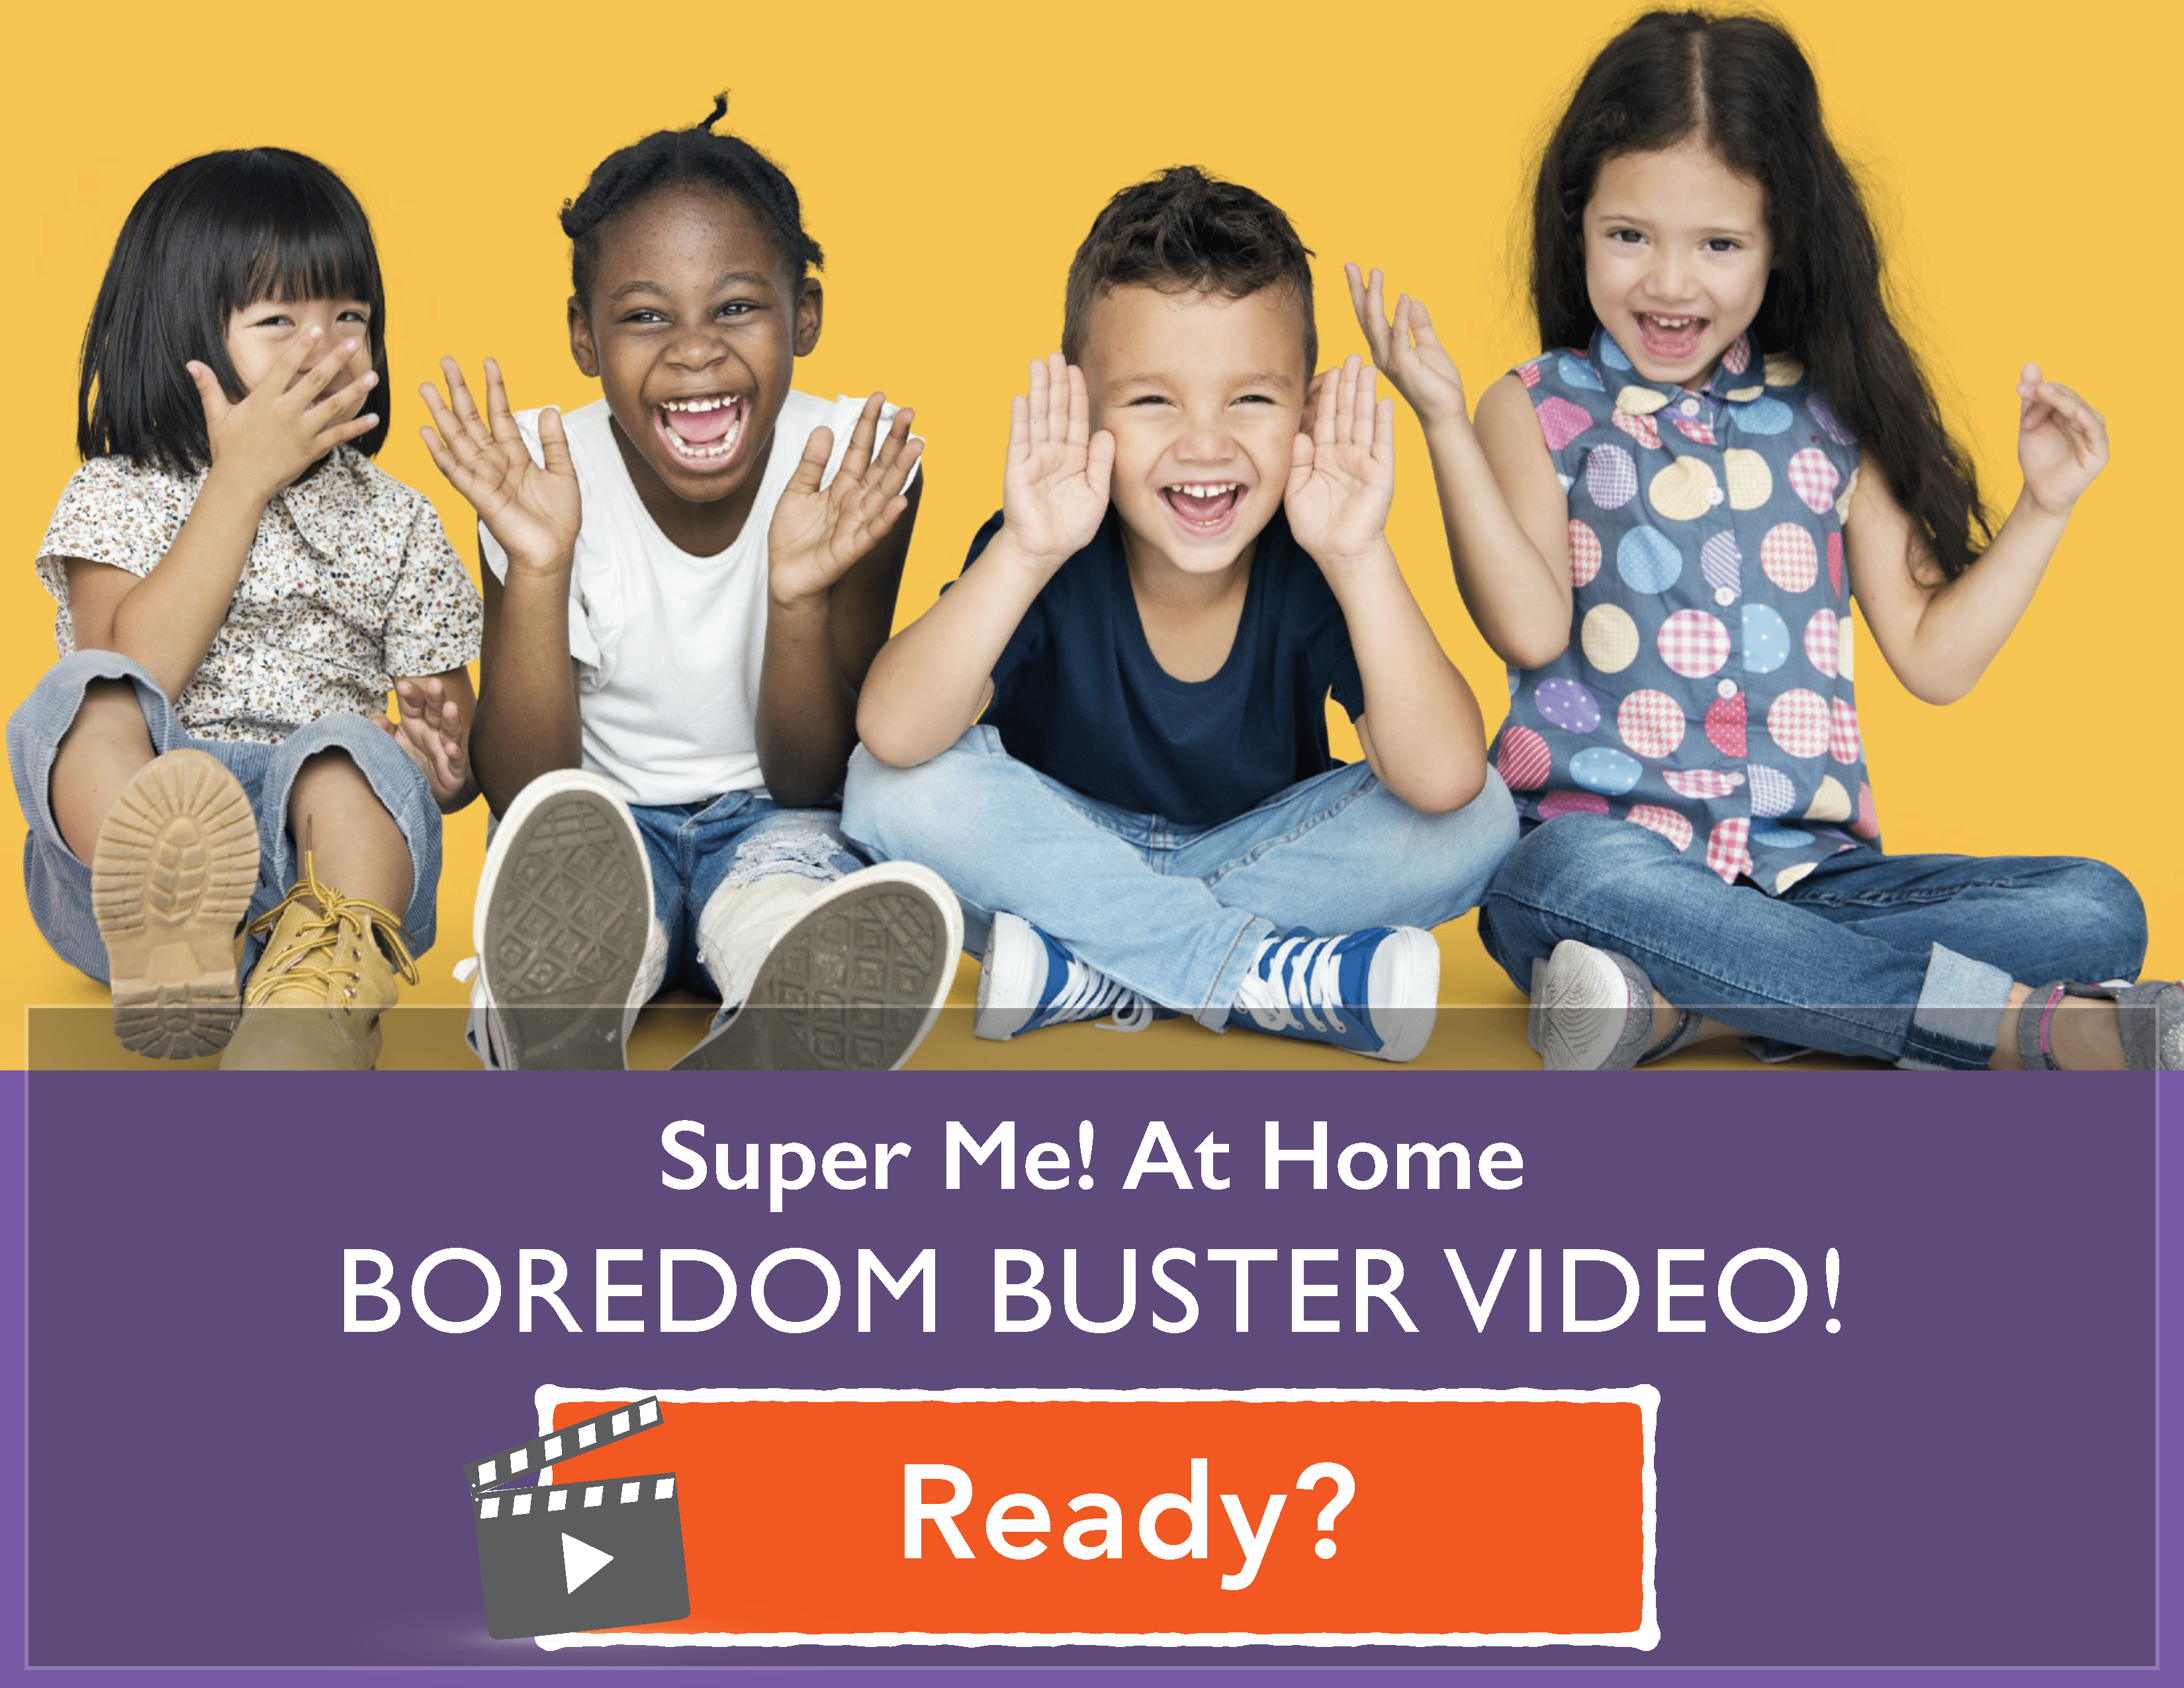 Super Me! at Home Boredom Buster